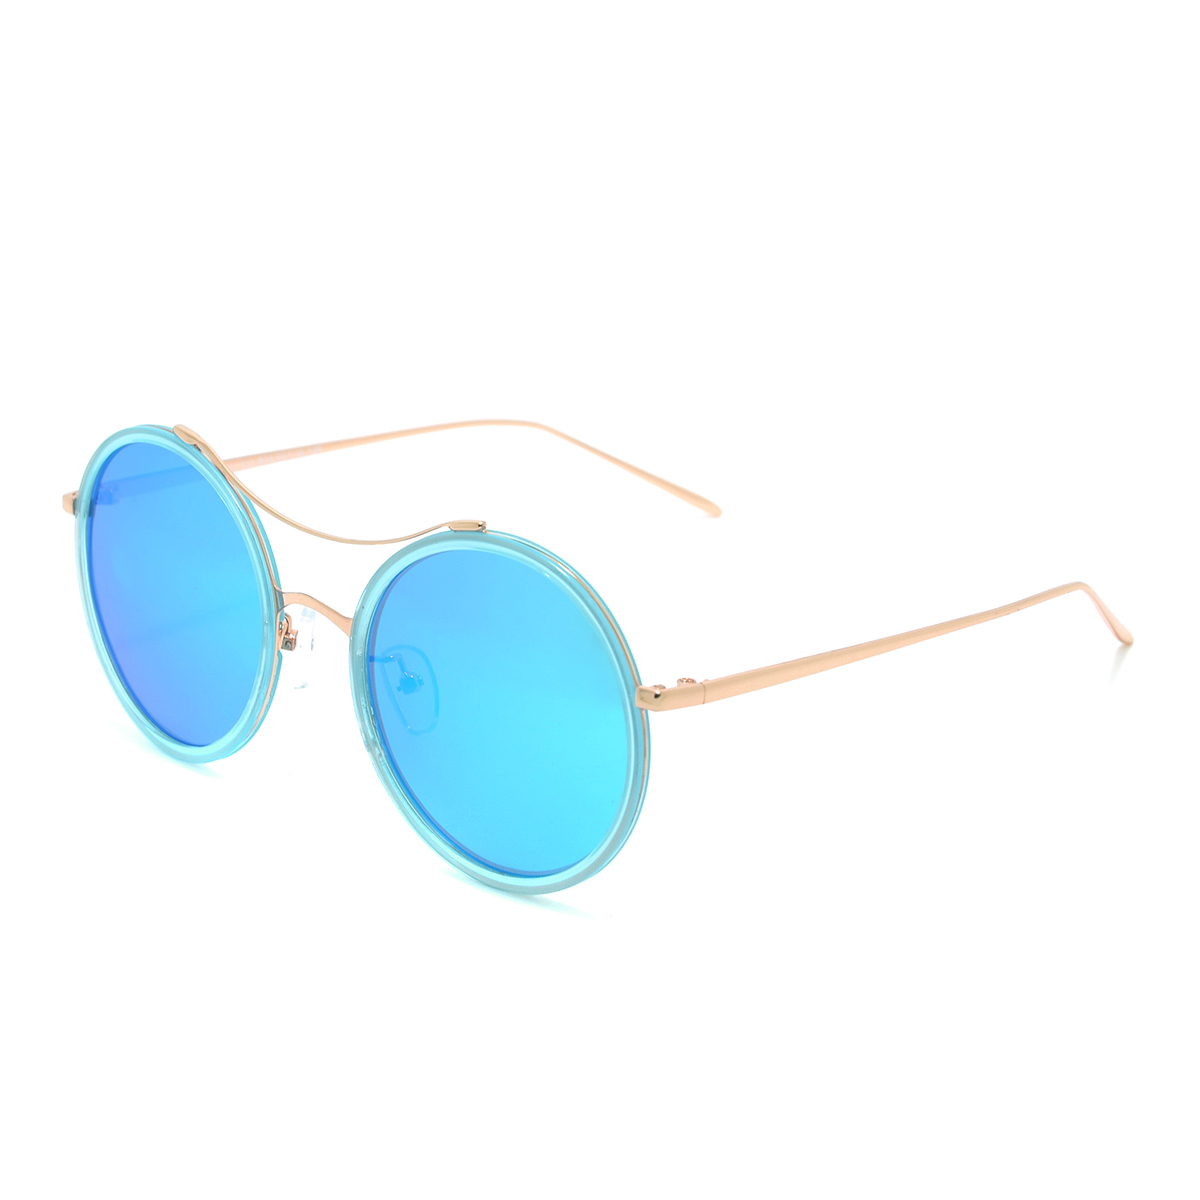 Dasein Round Sunglasses with Metal Arms